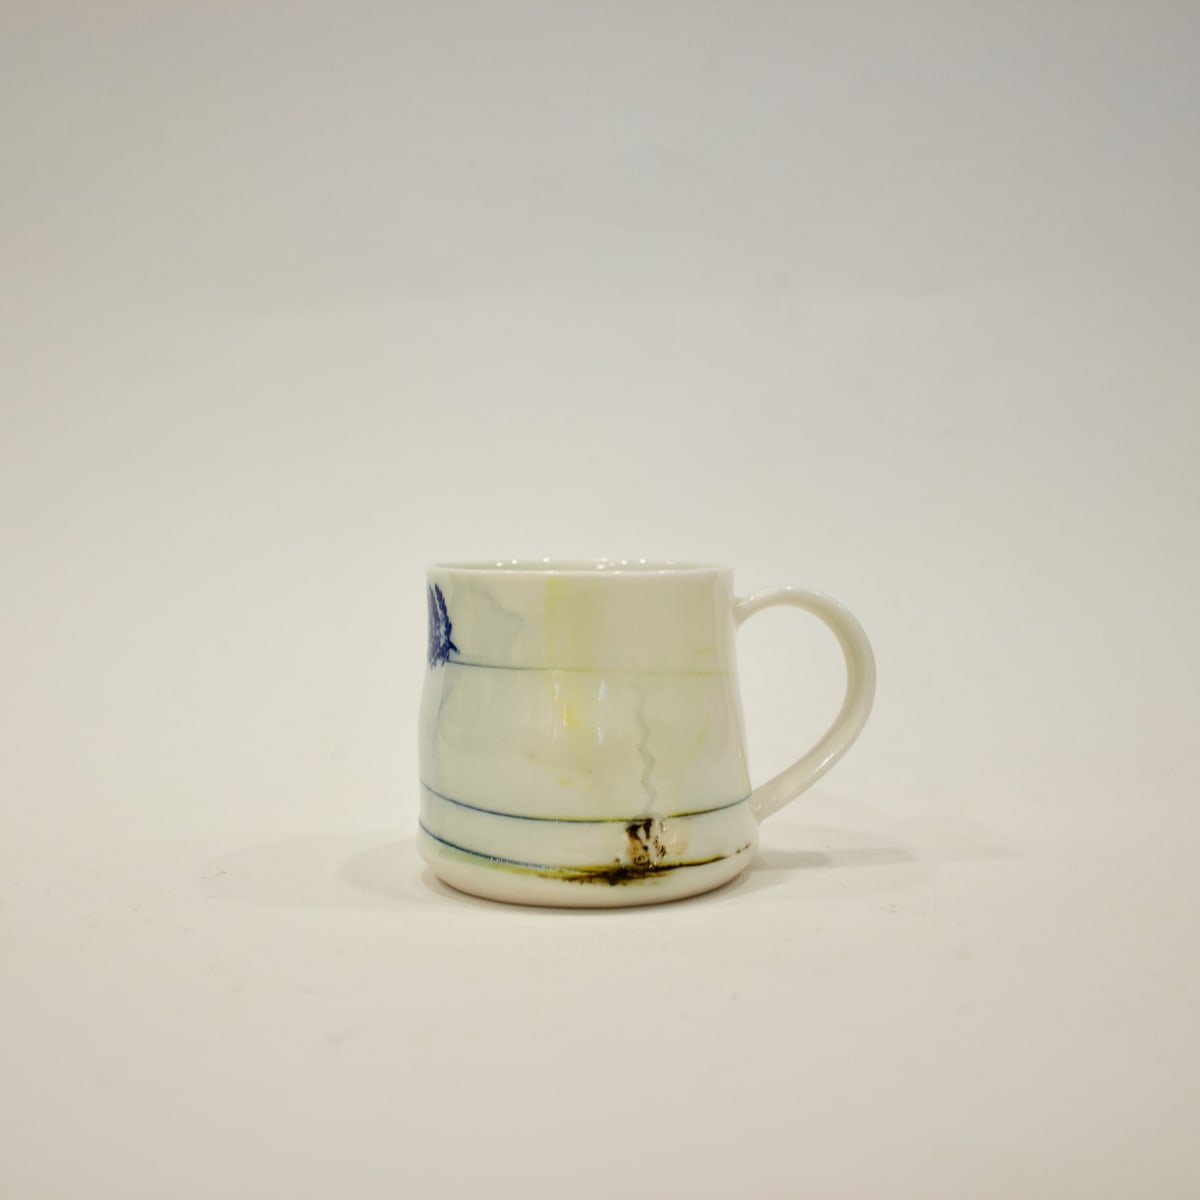 Helen Harrison Oxide Decal Espresso Cup, 2019 Porcelain 8 x 9 x 8 cm 3 1/8 x 3 1/2 x 3 1/8 in